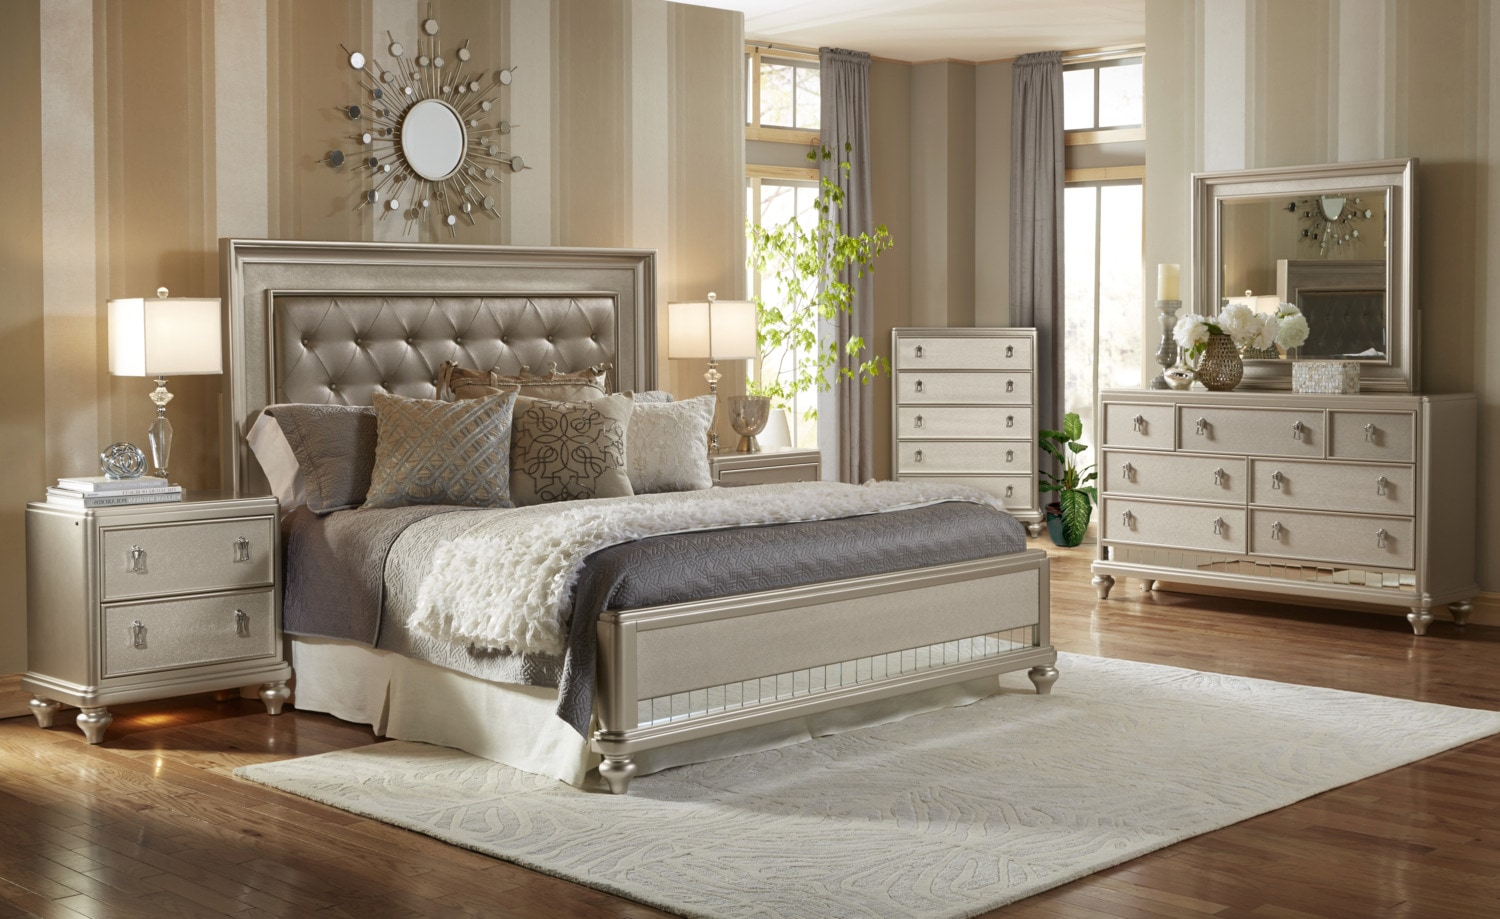 Diva 7 Piece King Bedroom Package The Brick